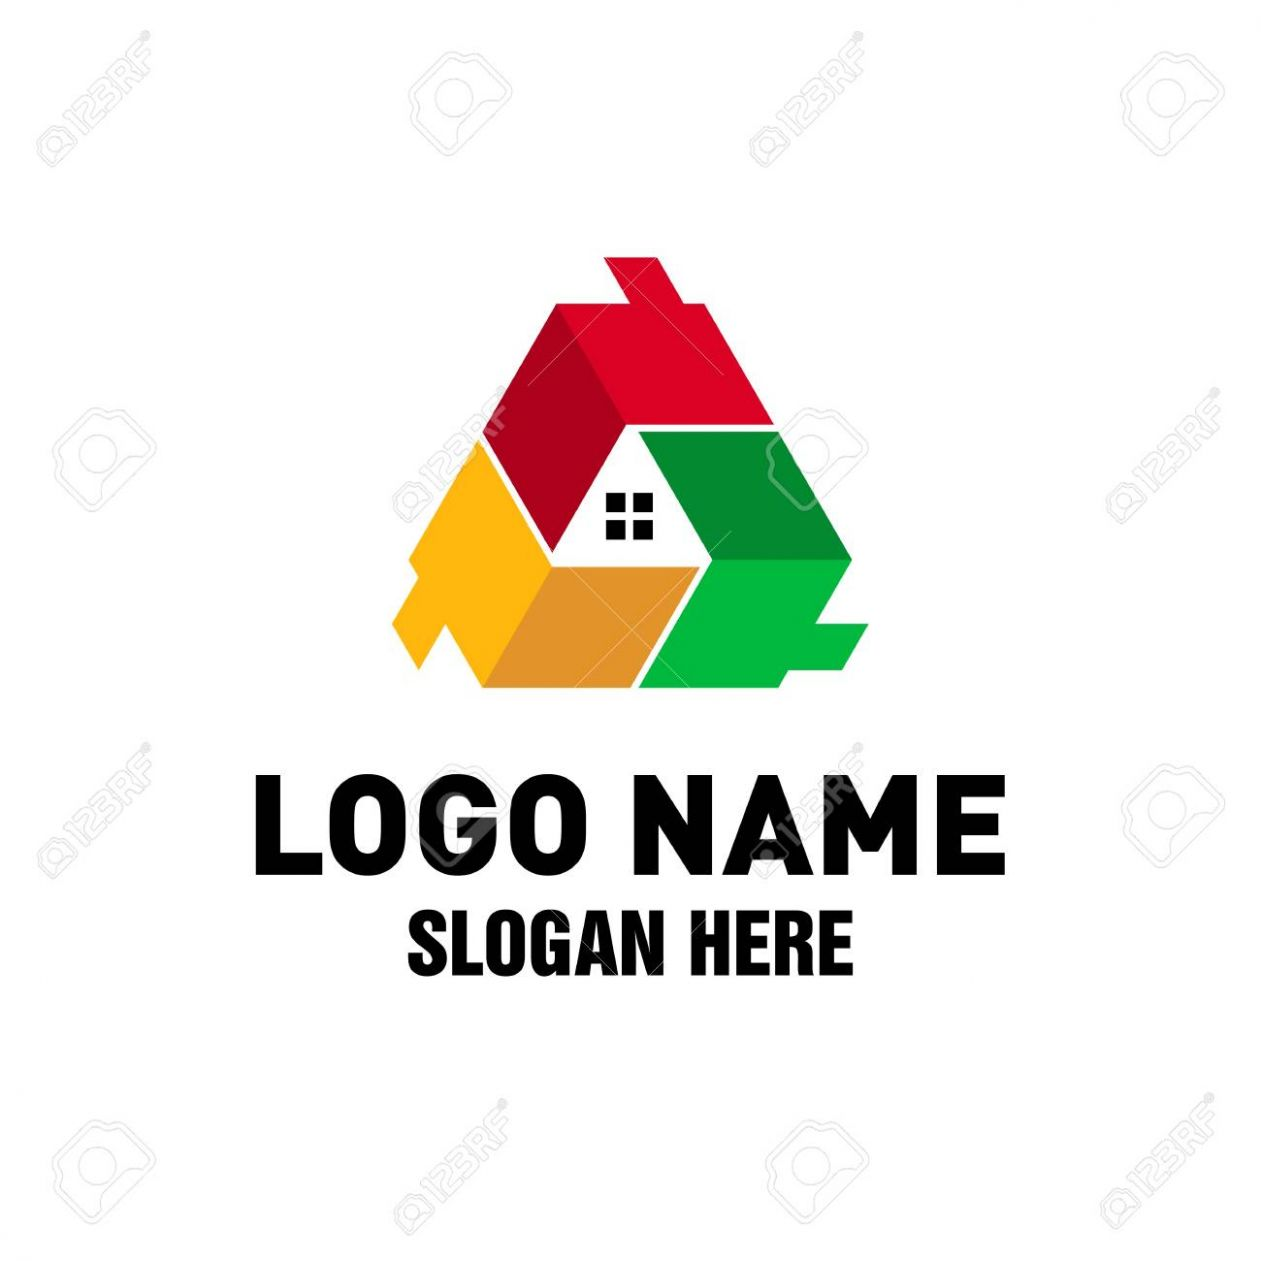 Real Estate Logo Design, Triple House Logo Design Inspiration